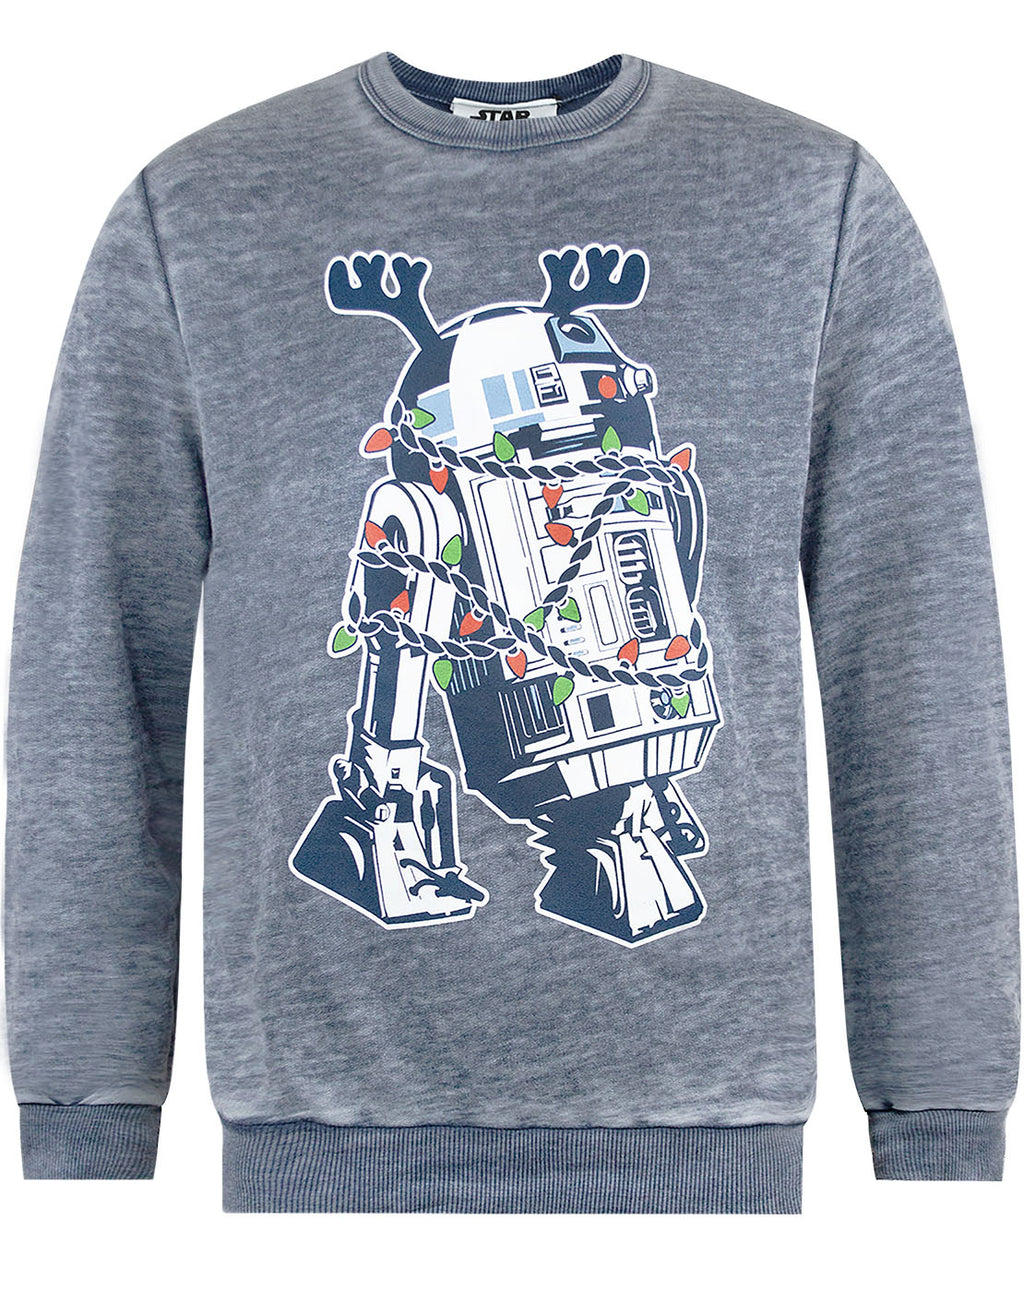 Star Wars R2D2 Decorations Burnout Christmas Sweatshirt